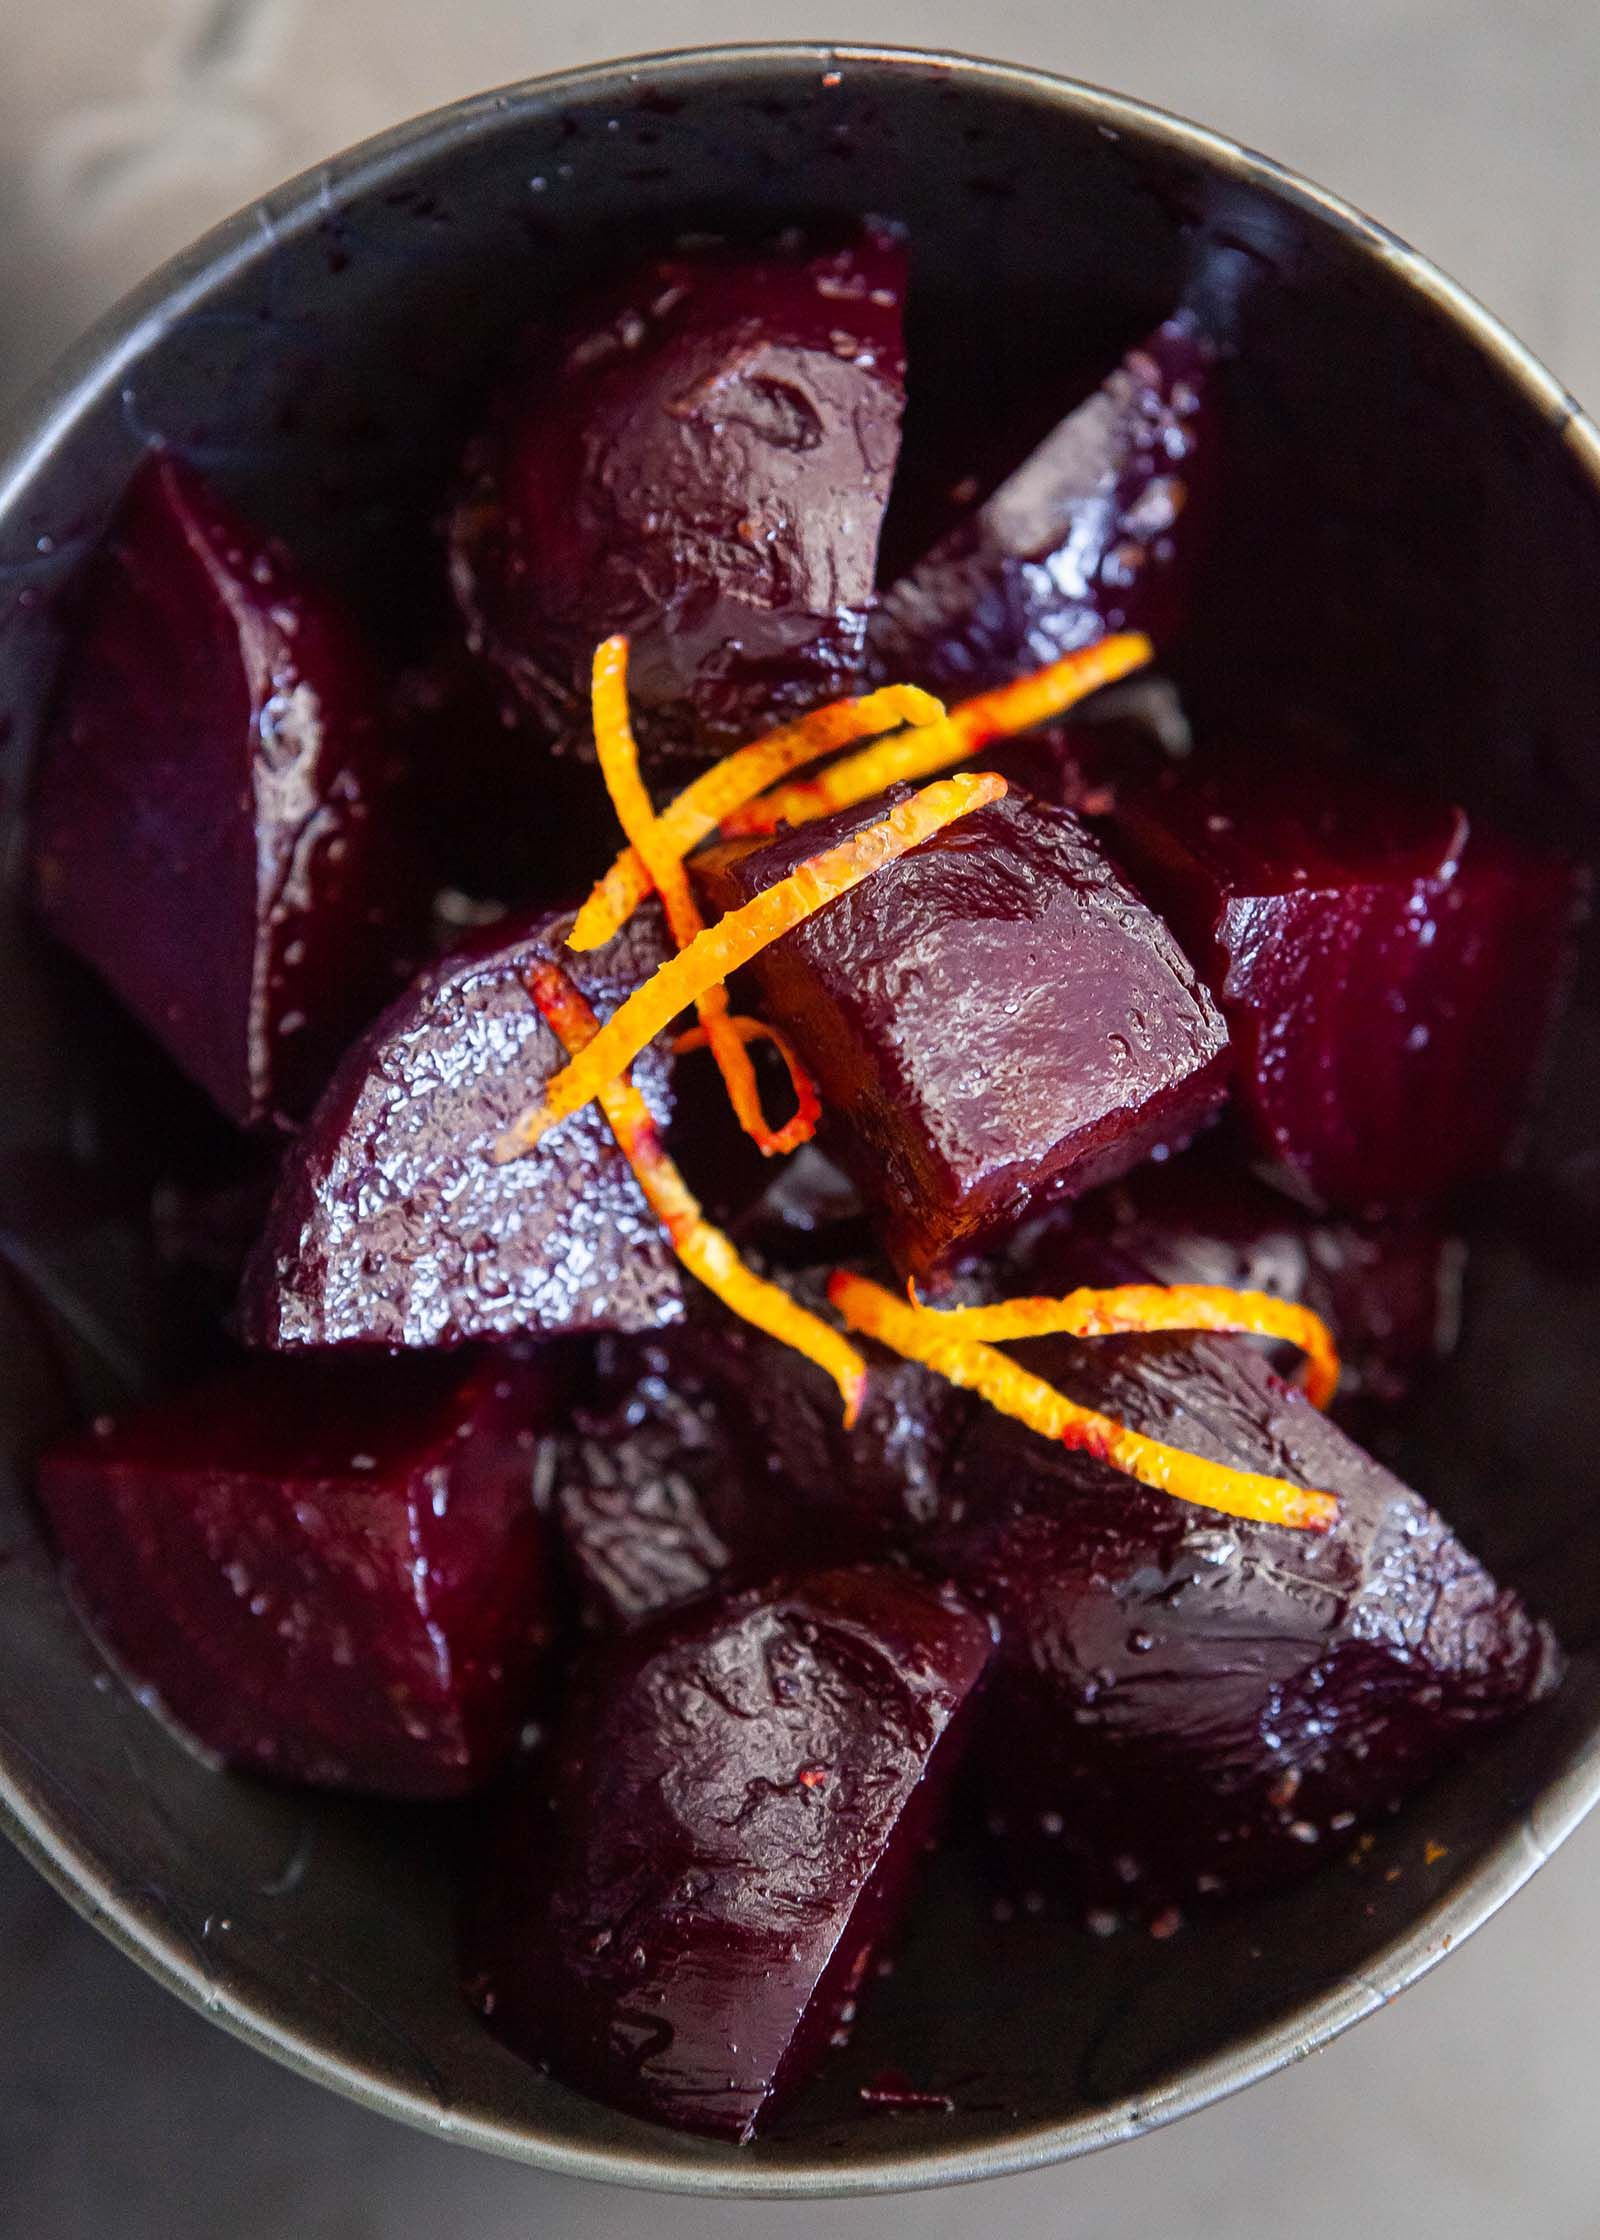 Roasted Beets With Balsamic Glaze Recipe Roasted Beets Balsamic Glaze Recipes Simply Recipes